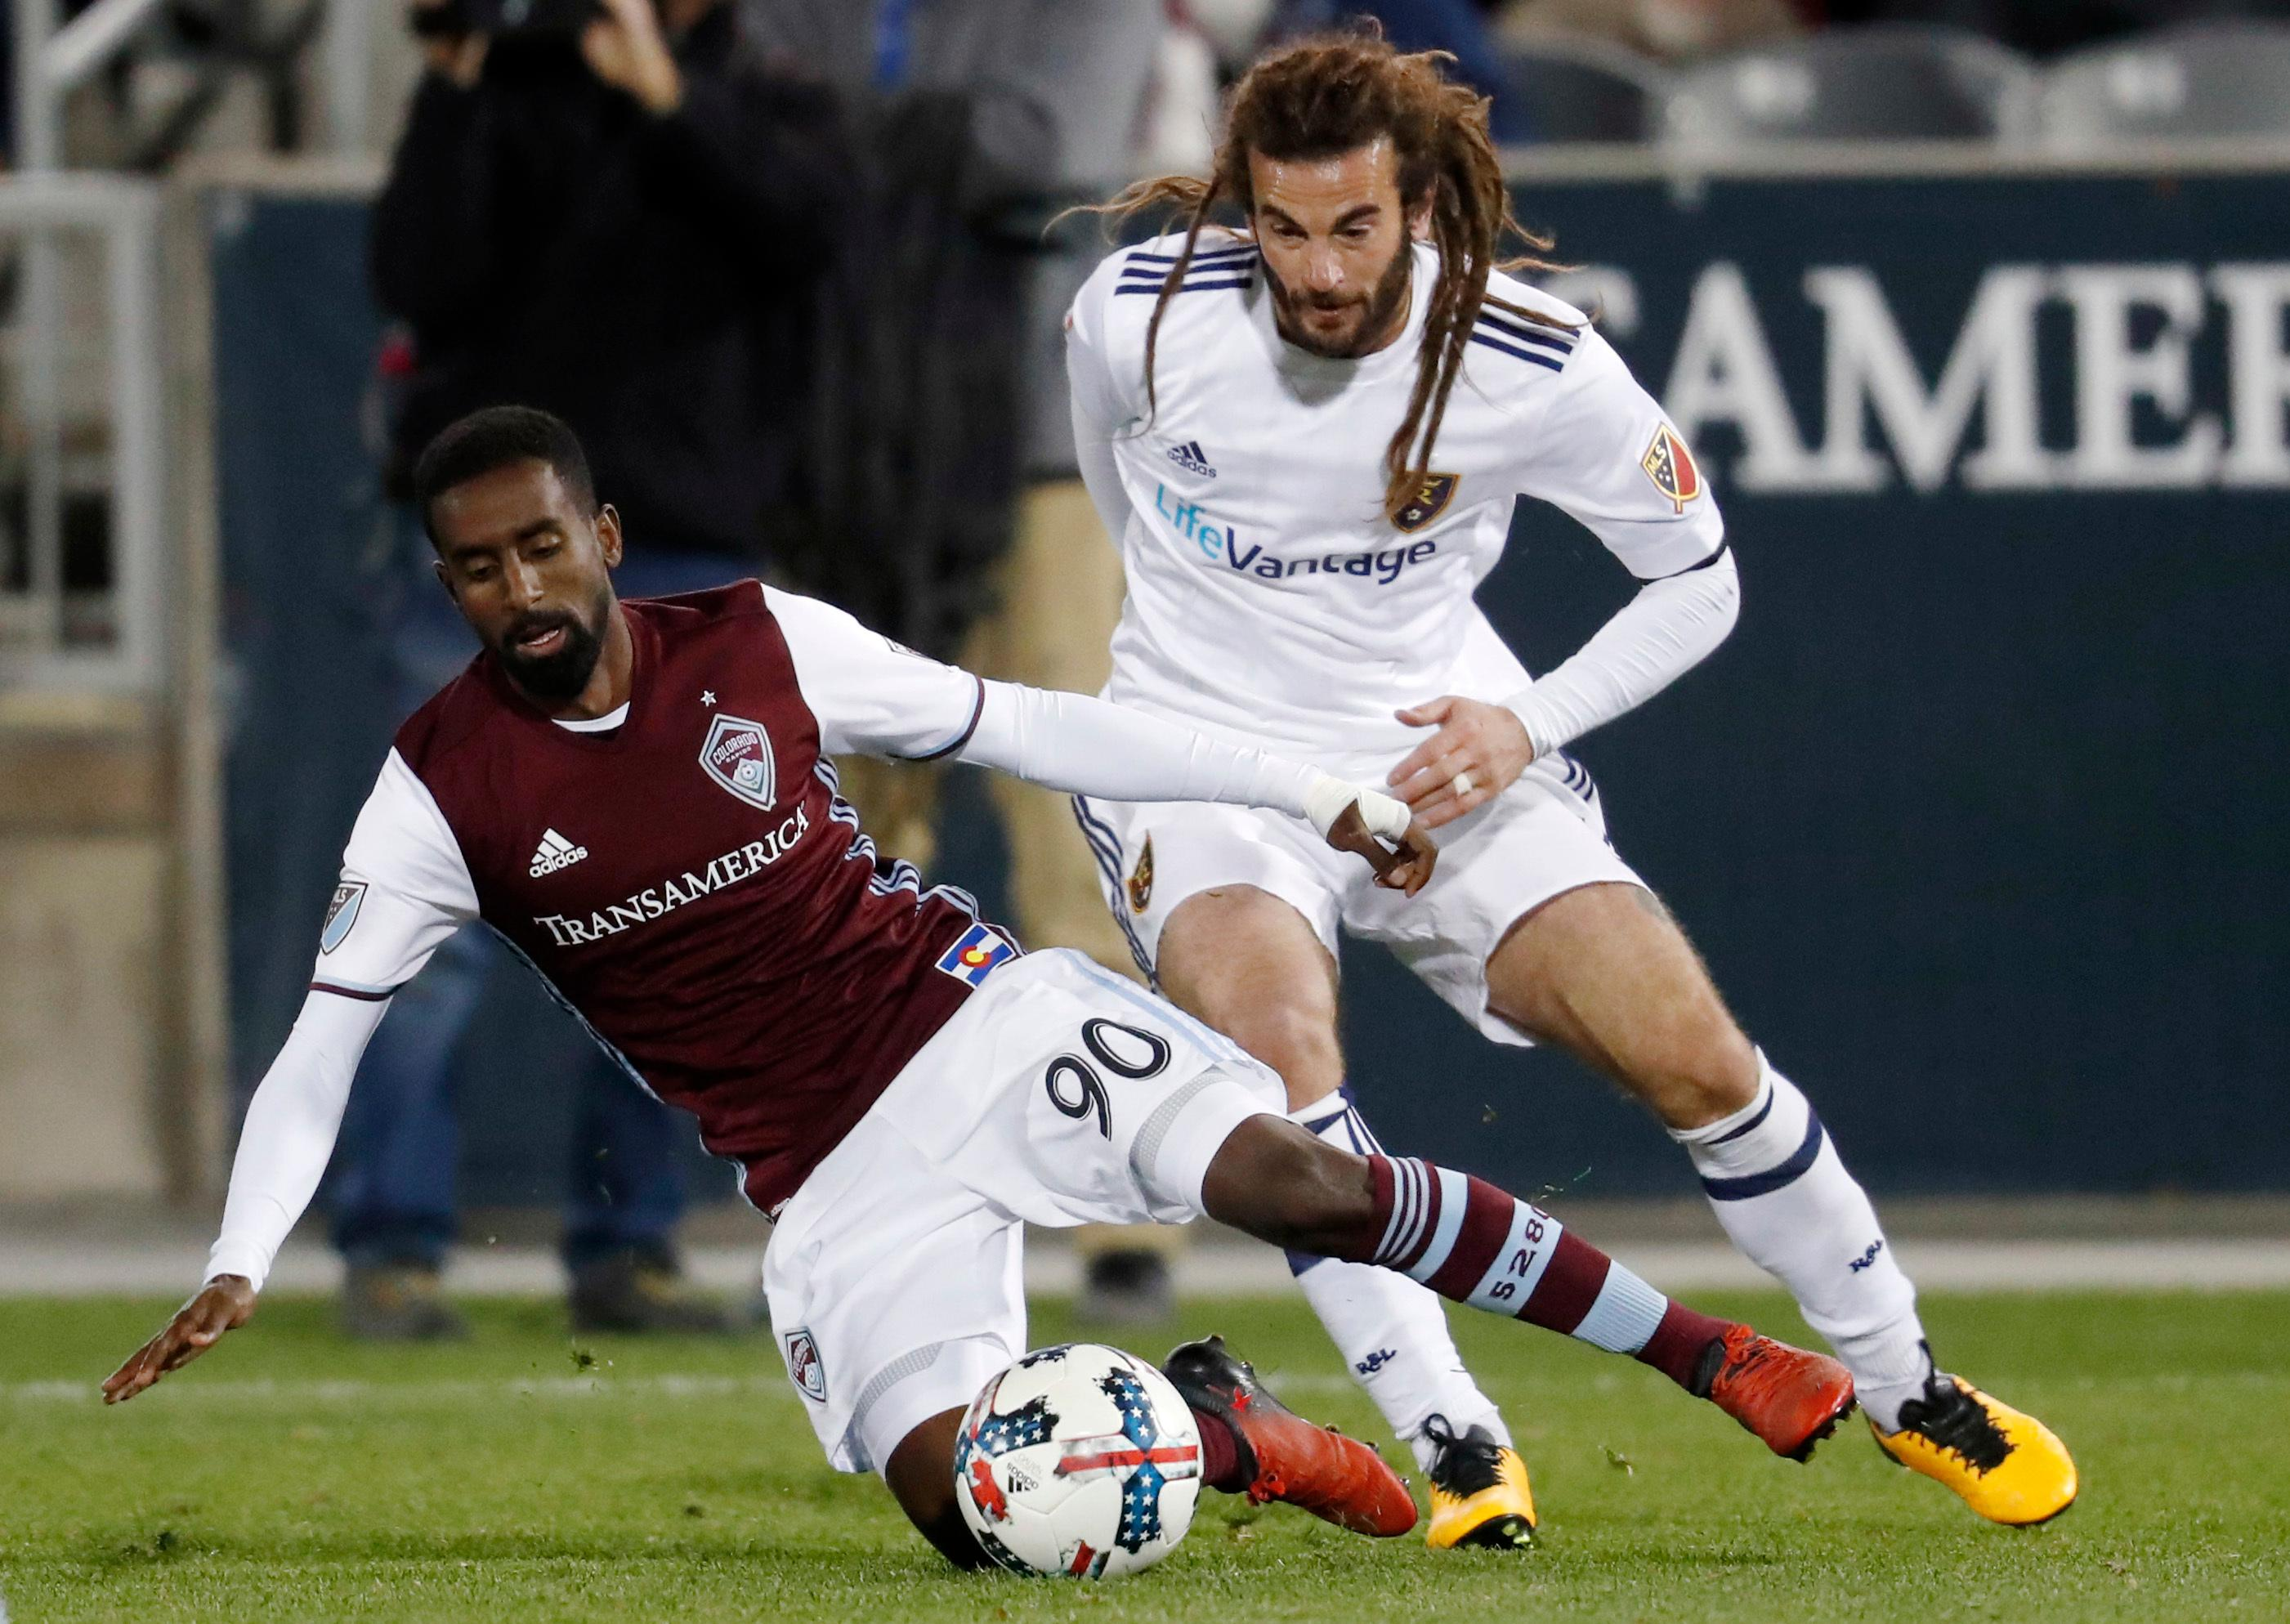 Colorado Rapids midfielder Mohammed Saeid, left, fights for control of the ball with Real Salt Lake midfielder Kyle Beckerman in the second half of an MLS soccer match, Sunday, Oct. 15, 2017, in Commerce City, Colo. The Rapids won 1-0. (AP Photo/David Zalubowski)